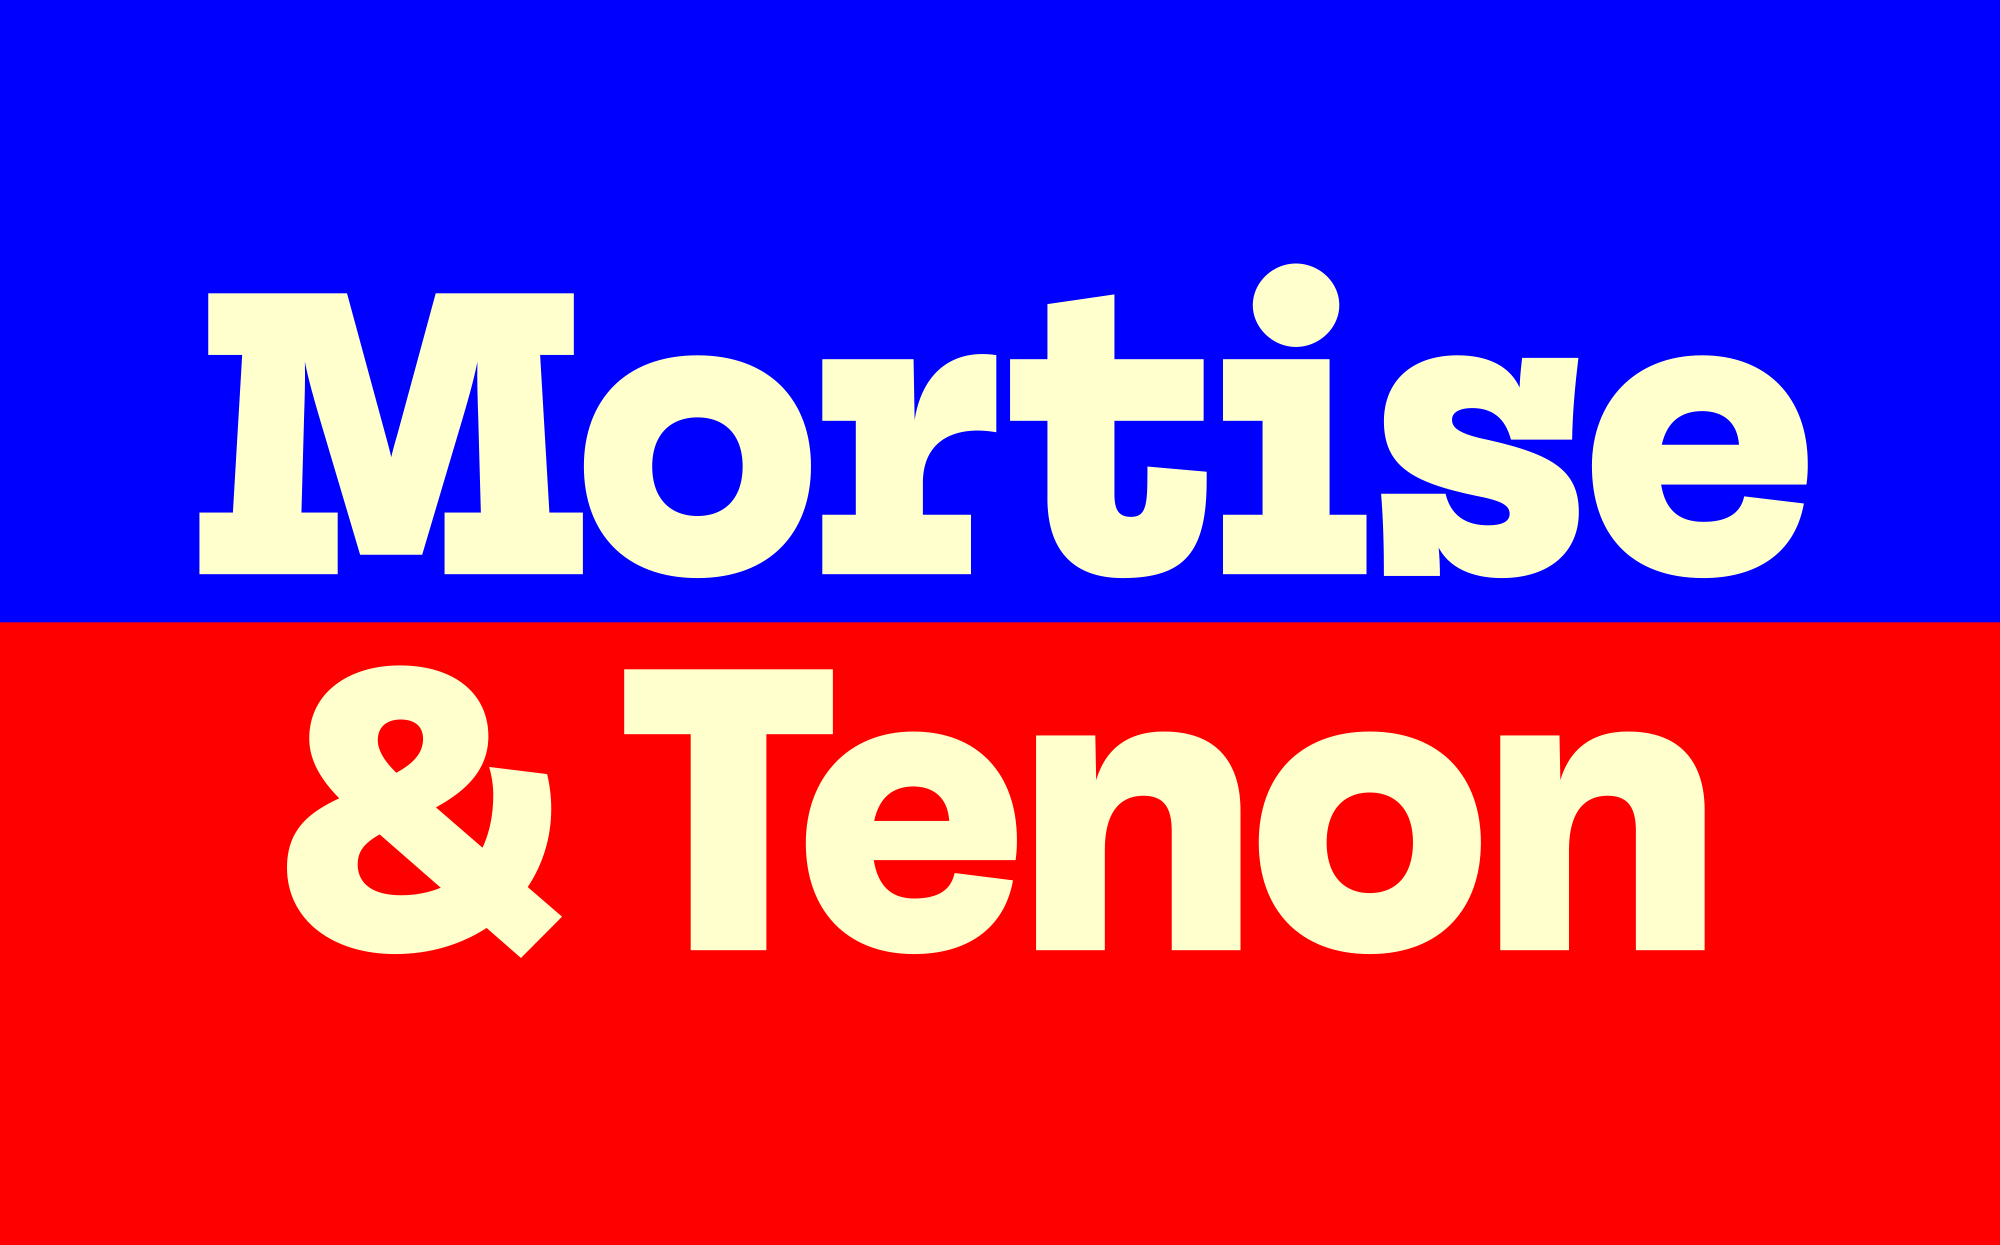 Cover image: Mortise & Tenon